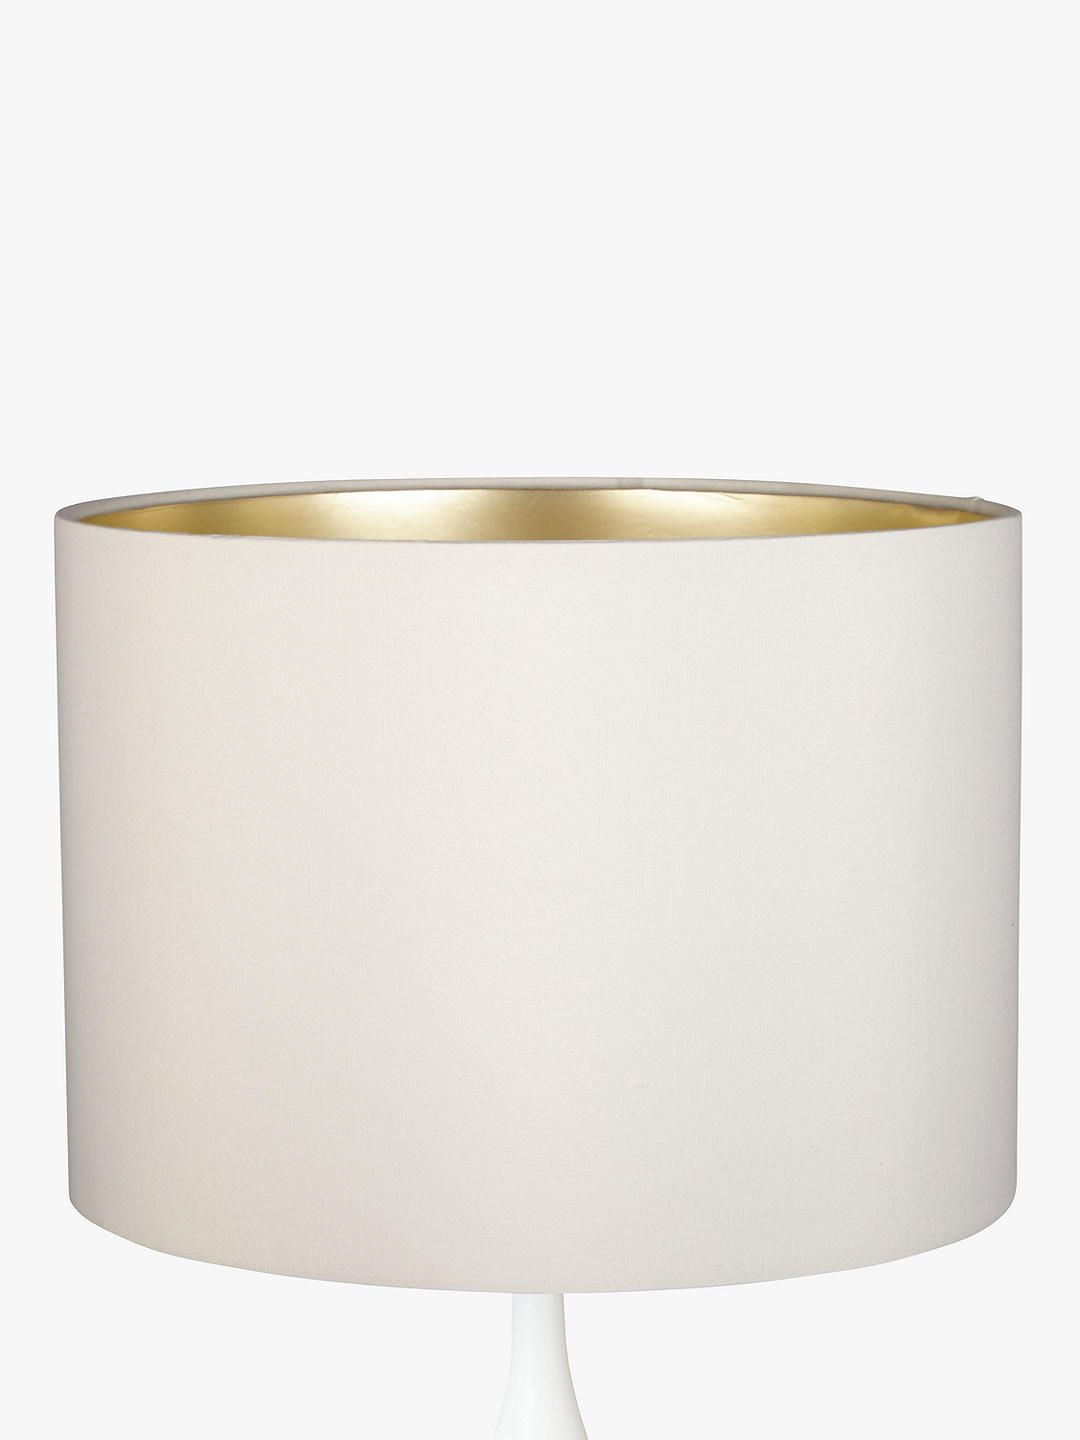 John Lewis Partners Cassie Lampshade Cream Champagne Stained Glasses Rawhide Lampshades Modern Lamp